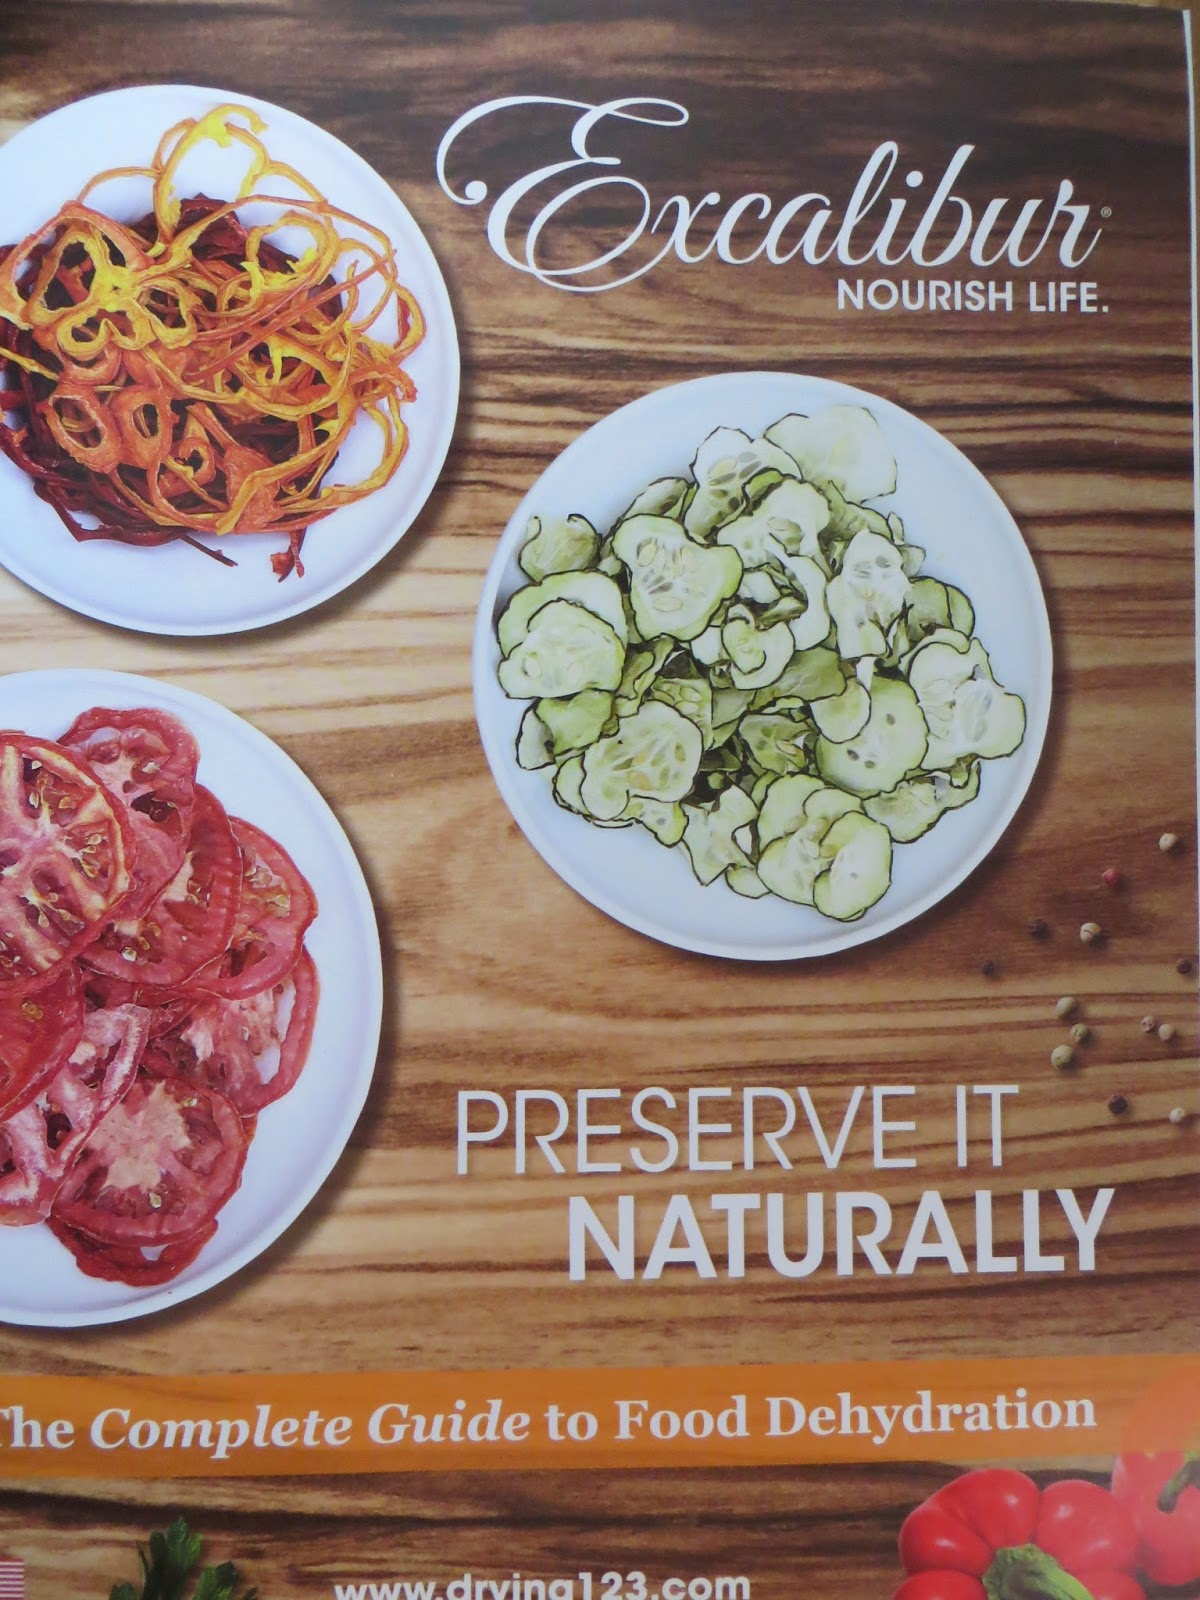 Excalibur, preserve it naturally, complete dehydration food guide.